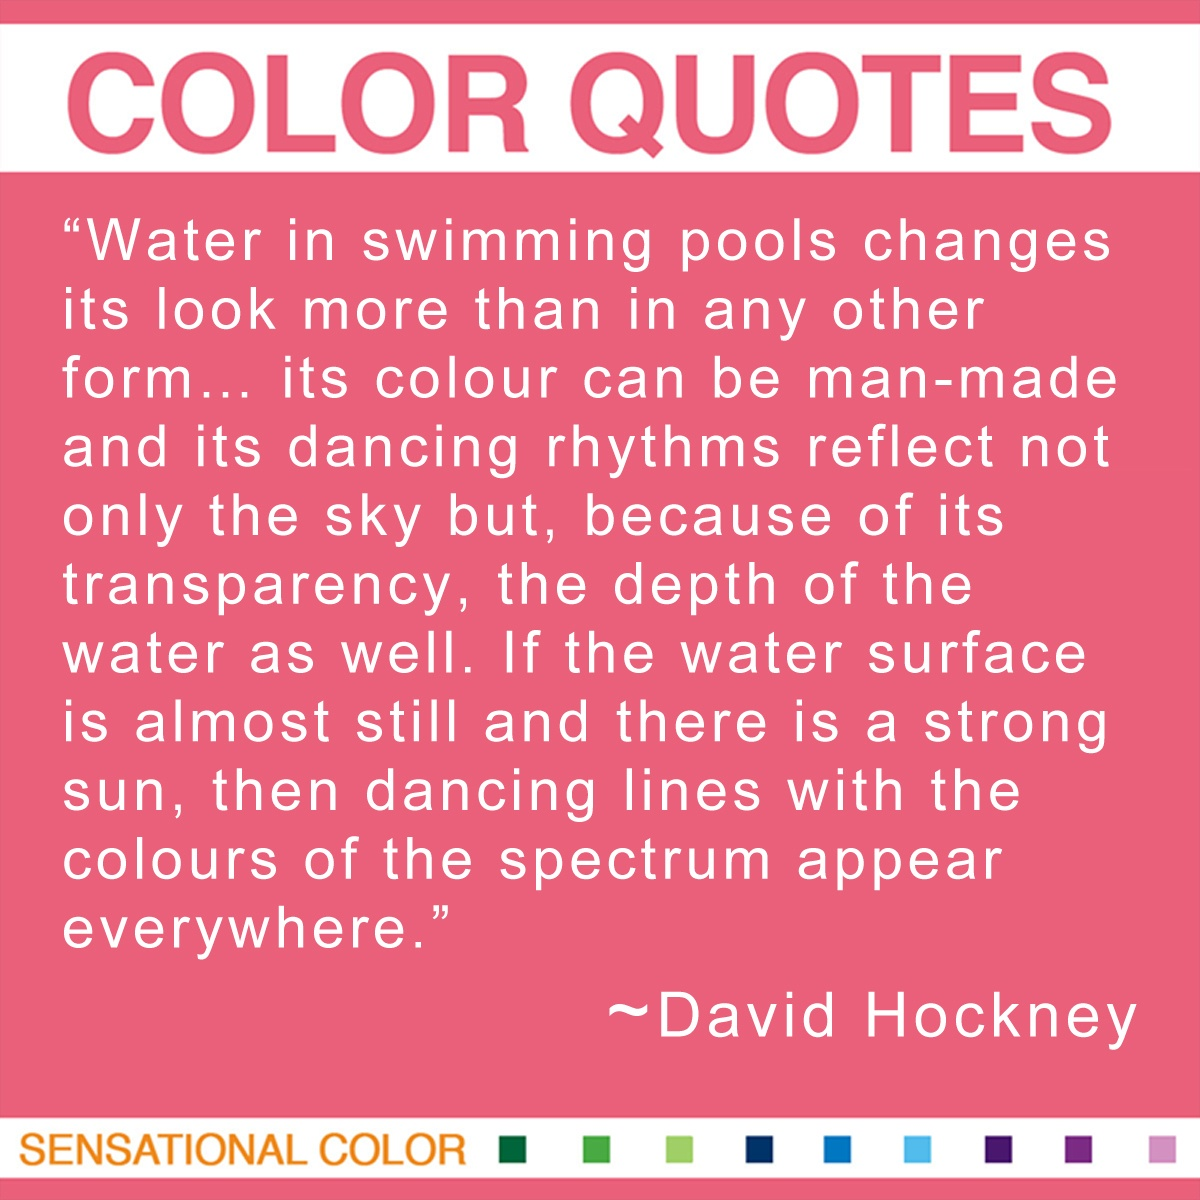 """Water in swimming pools changes its look more than in any other form… its colour can be man-made and its dancing rhythms reflect not only the sky but, because of its transparency, the depth of the water as well. If the water surface is almost still and there is a strong sun, then dancing lines with the colours of the spectrum appear everywhere."" - David Hockney"